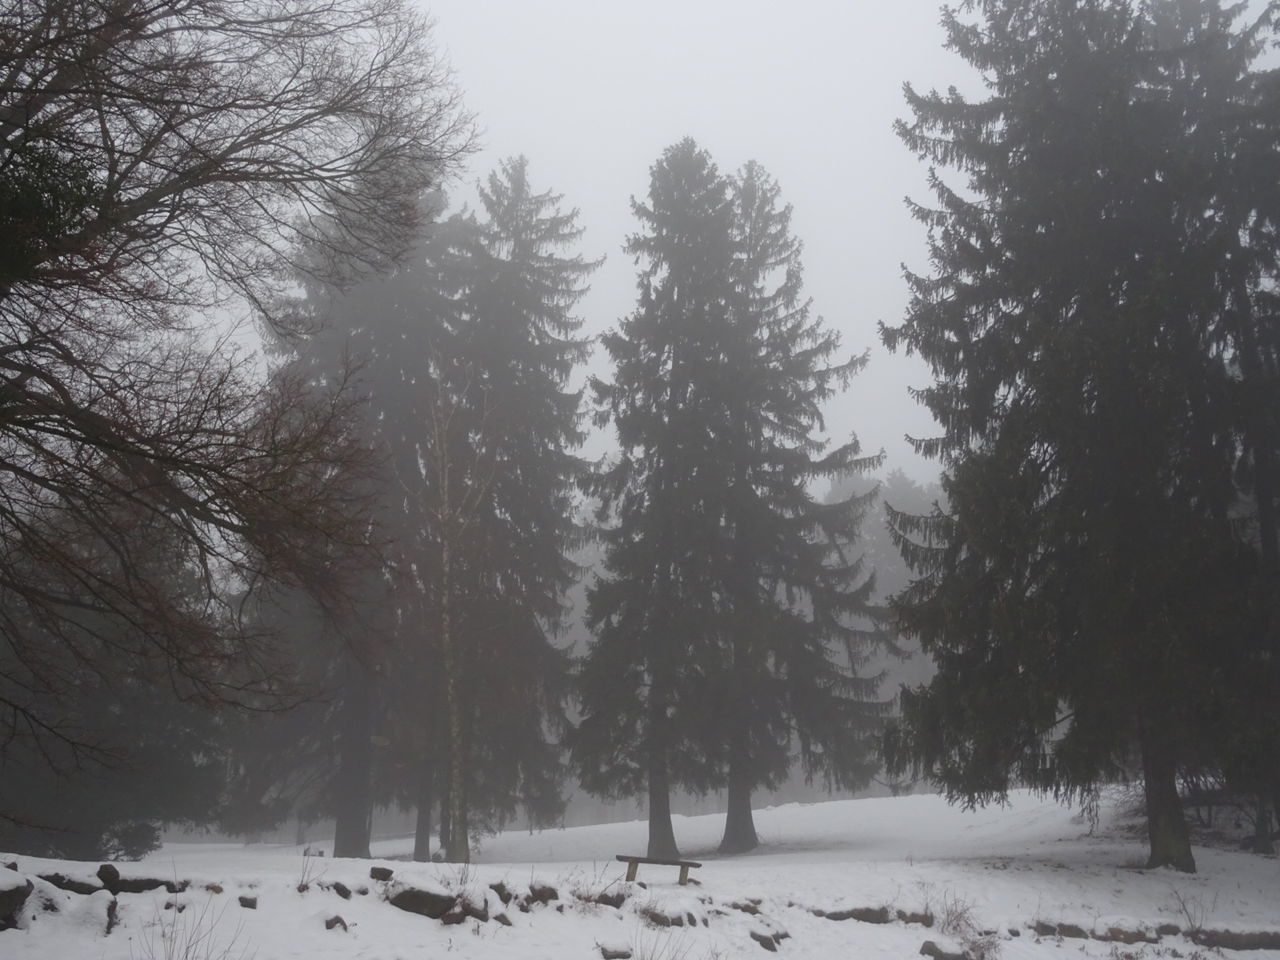 snow, winter, cold temperature, tree, nature, weather, beauty in nature, tranquility, tranquil scene, cold, scenics, no people, landscape, outdoors, day, snowing, bare tree, sky